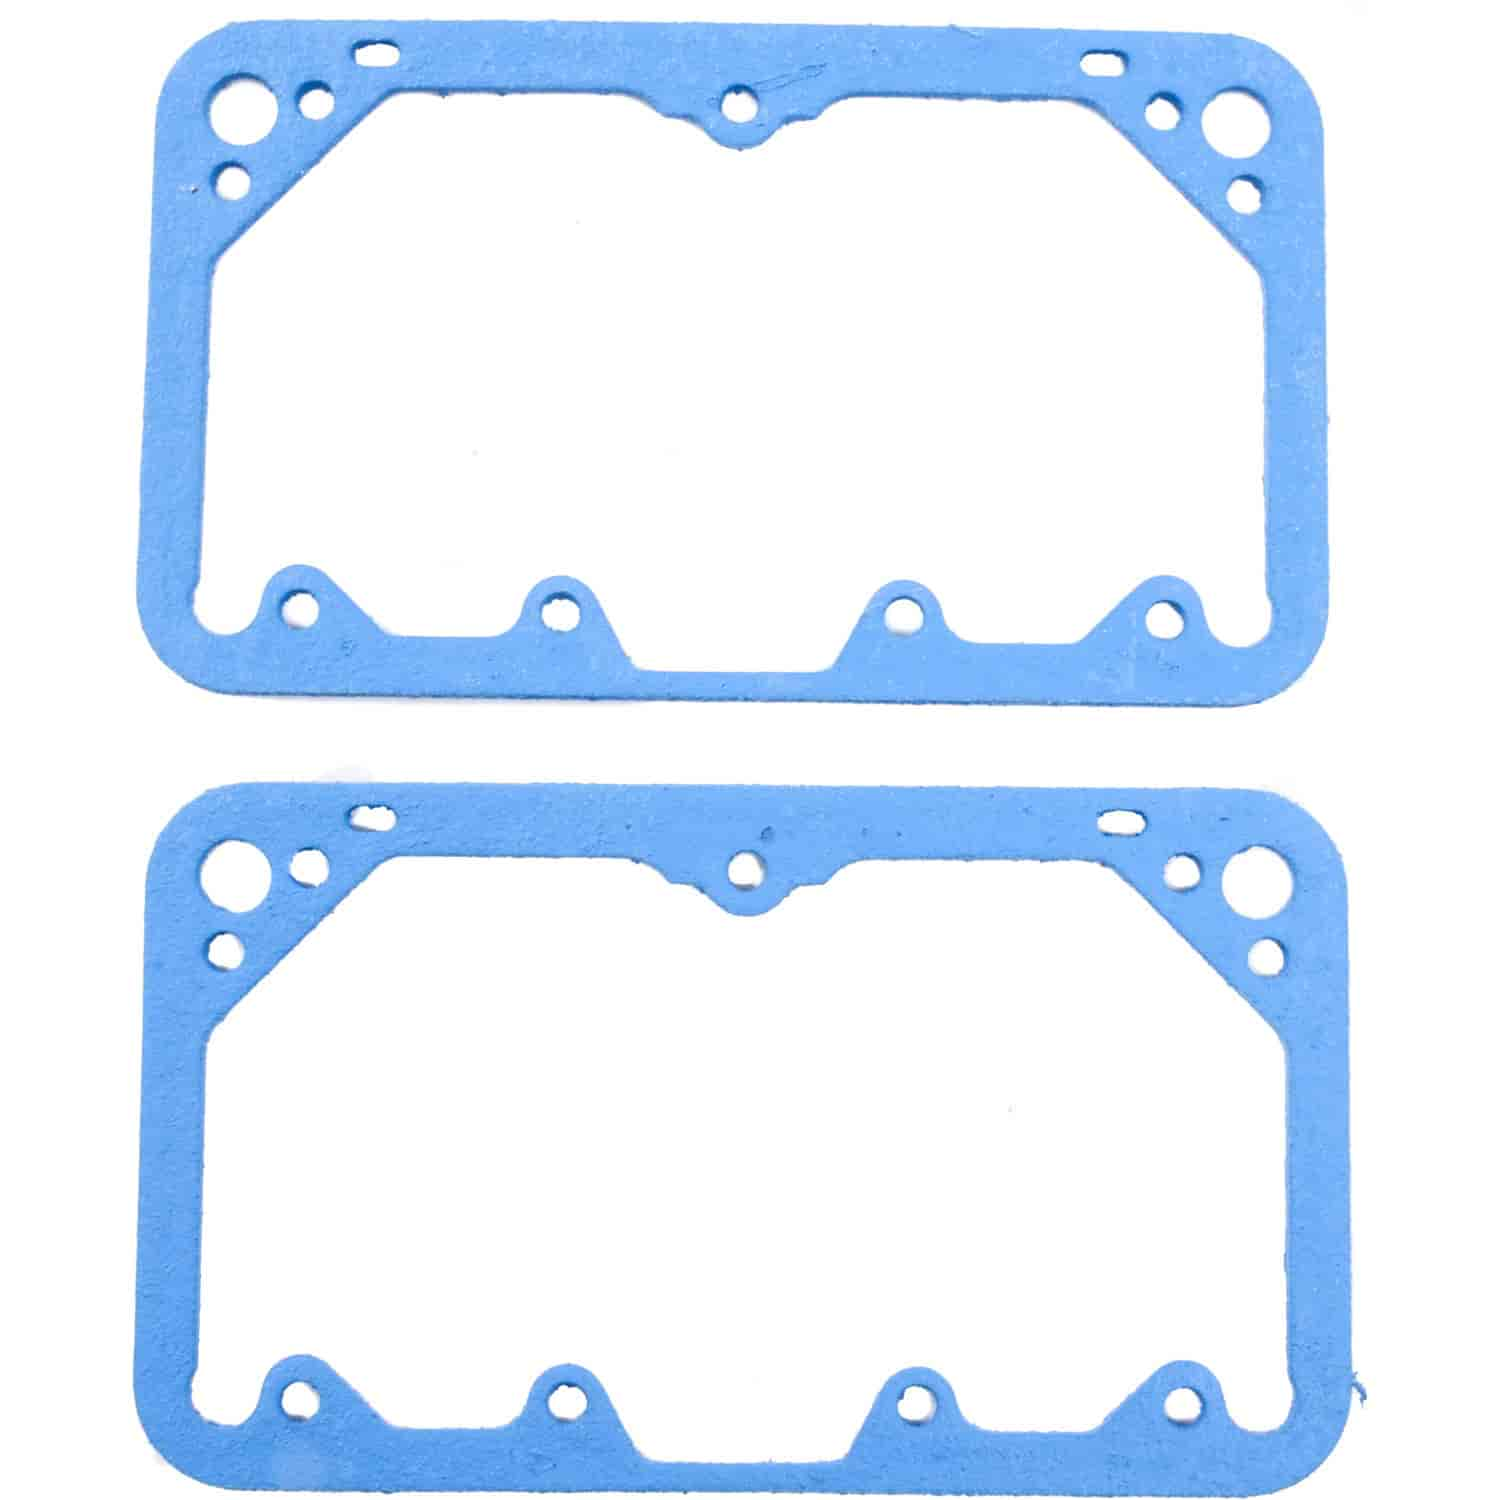 Holley 108-83-2 - Holley Non-Stick Metering Block and Fuel Bowl Gaskets